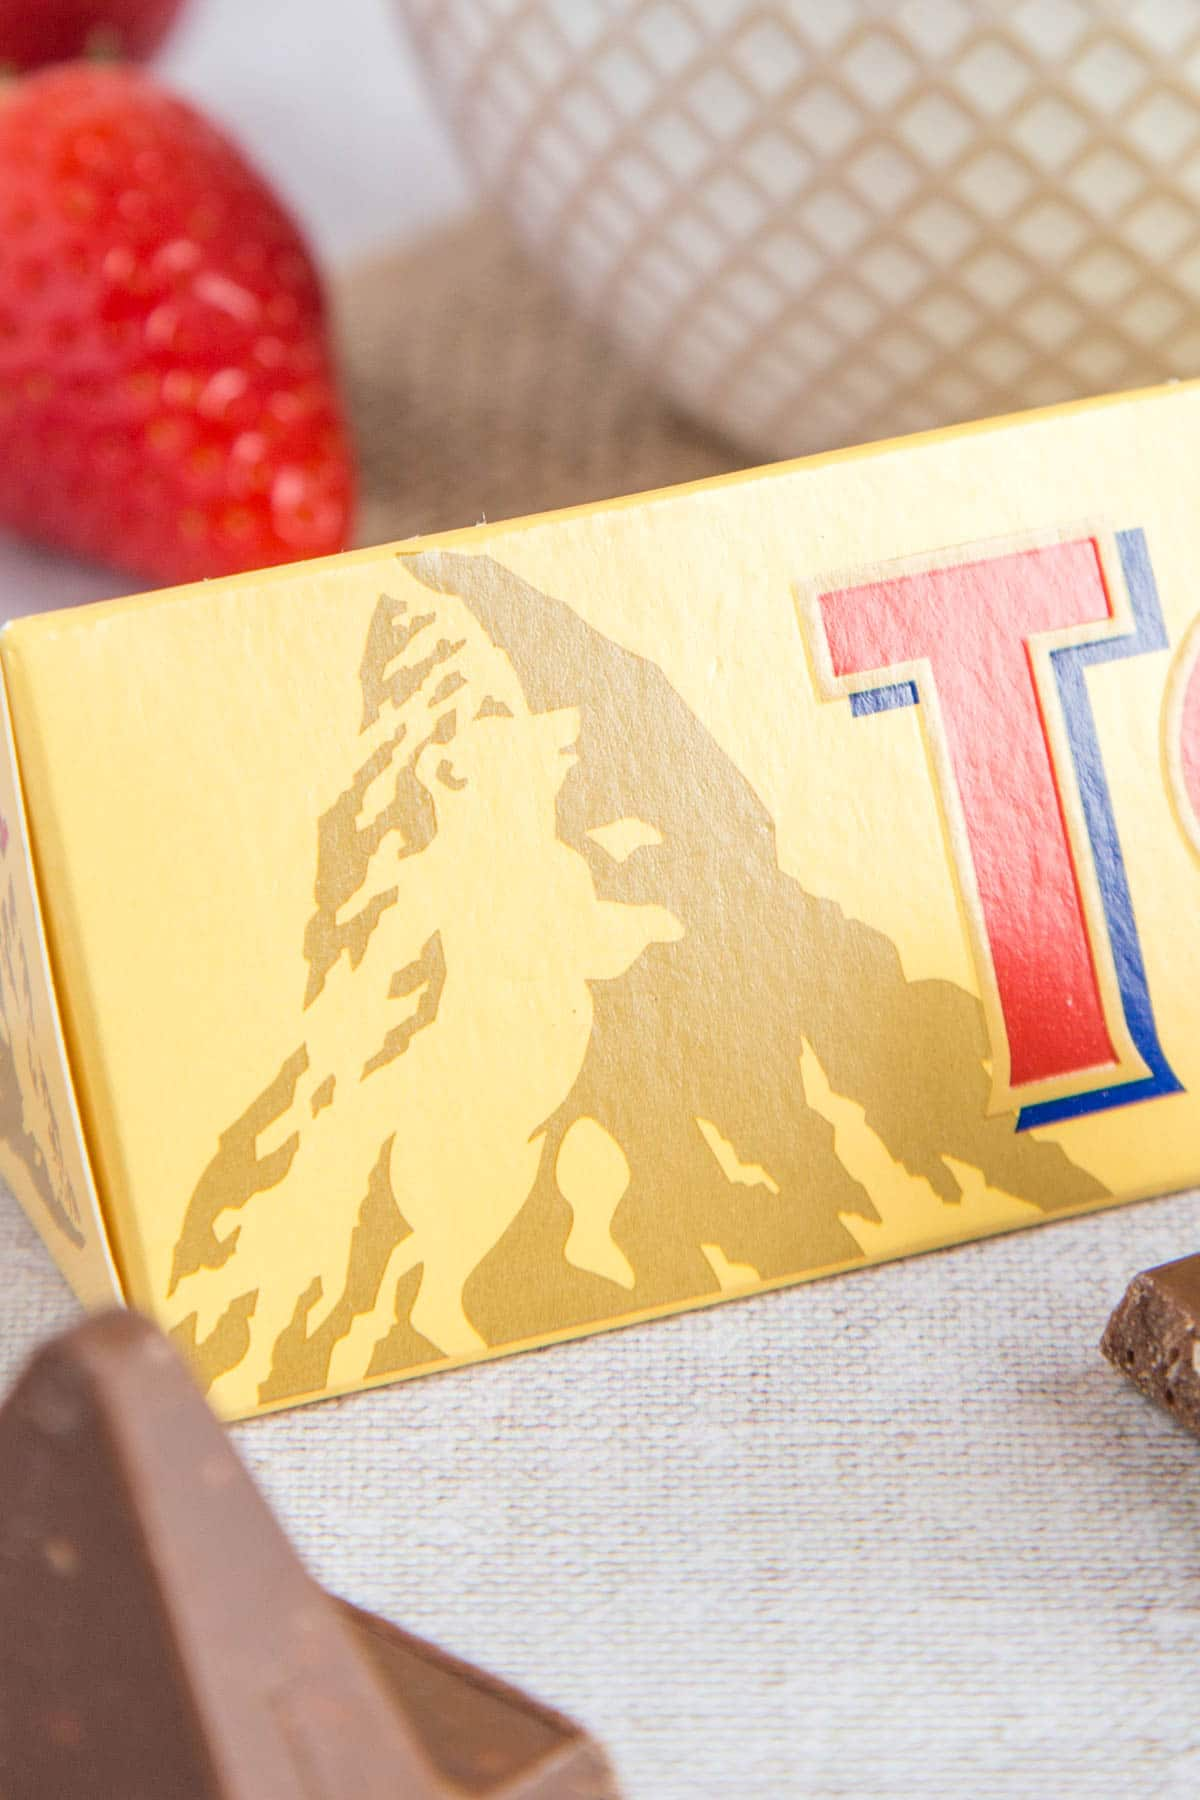 A close up of a Toblerone box showing the bear hidden in the picture of the Matterhorn mountain.